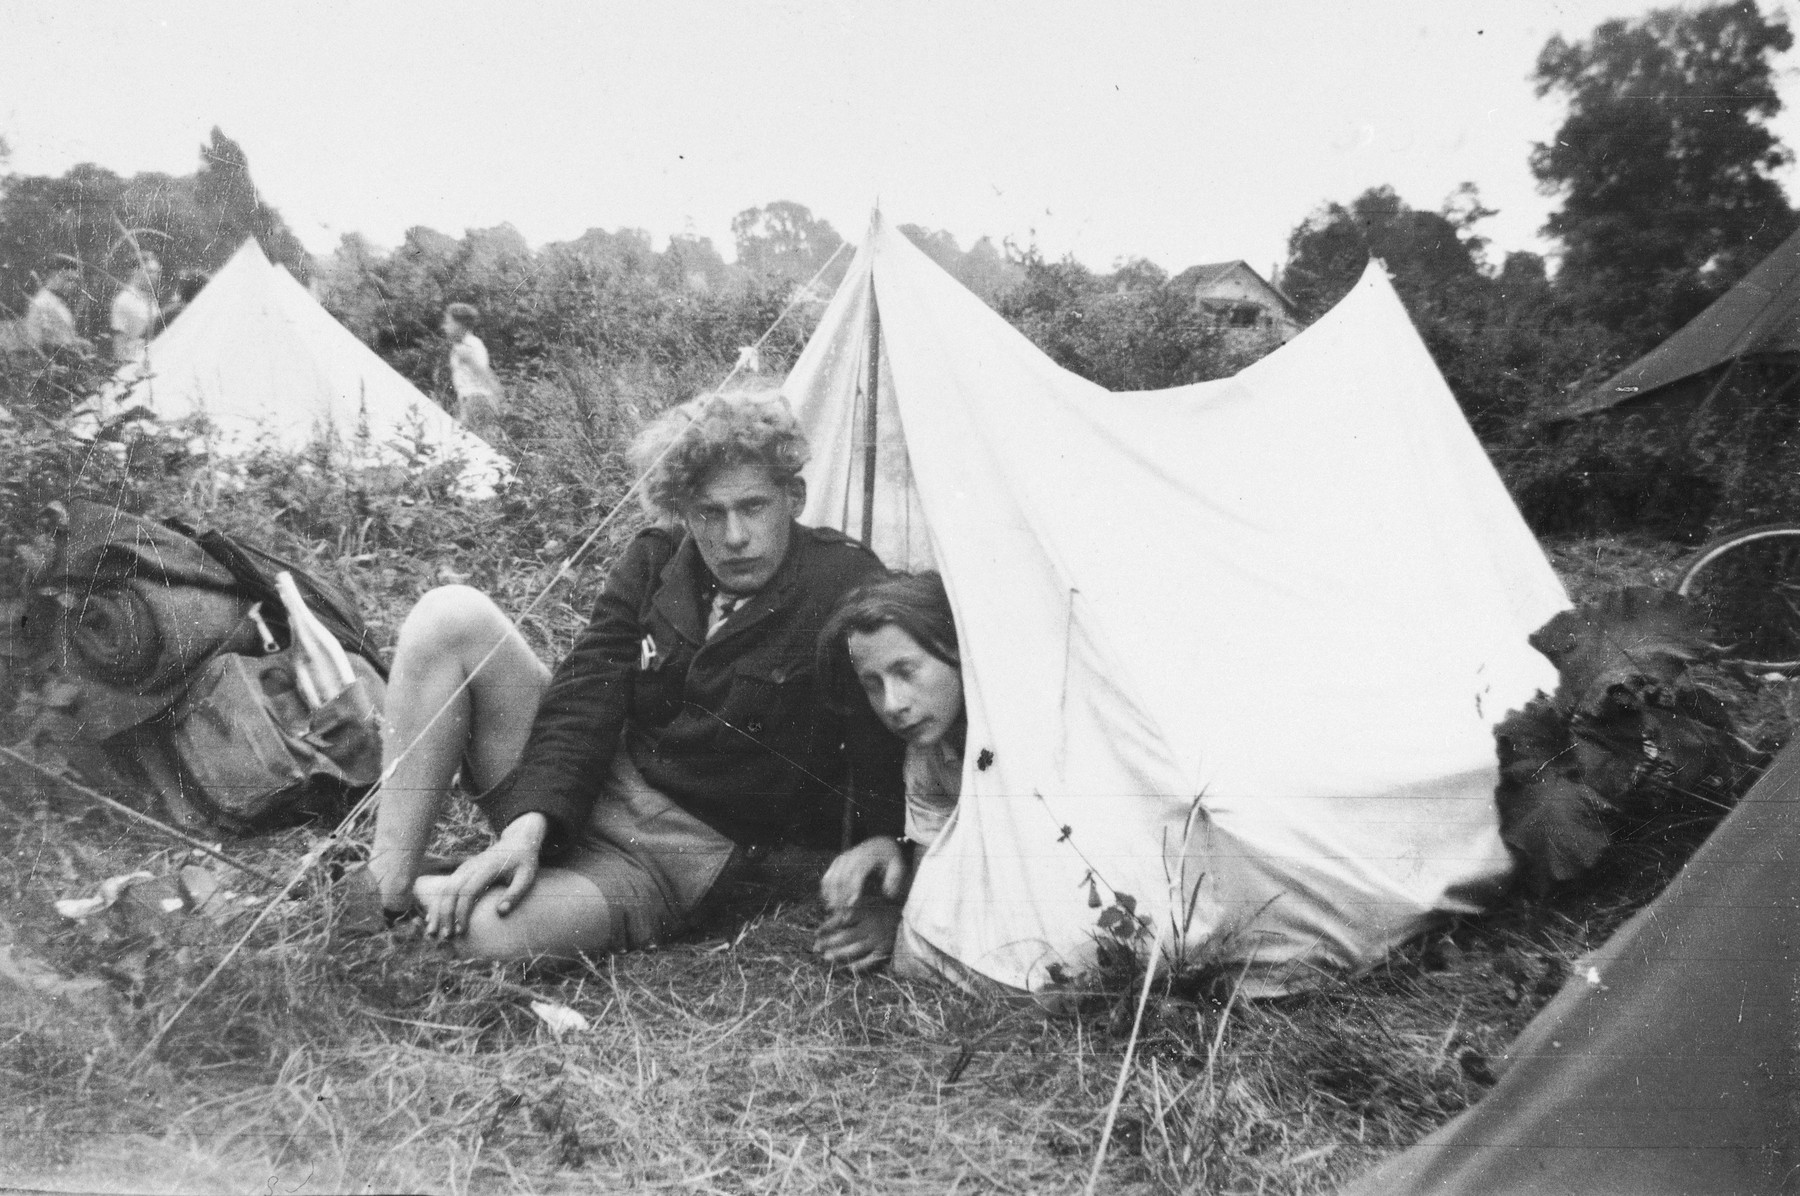 Benno Ginsburg (left) poses with a friend in front of their tent at a hachshara (Zionist collective) in Toulouse.